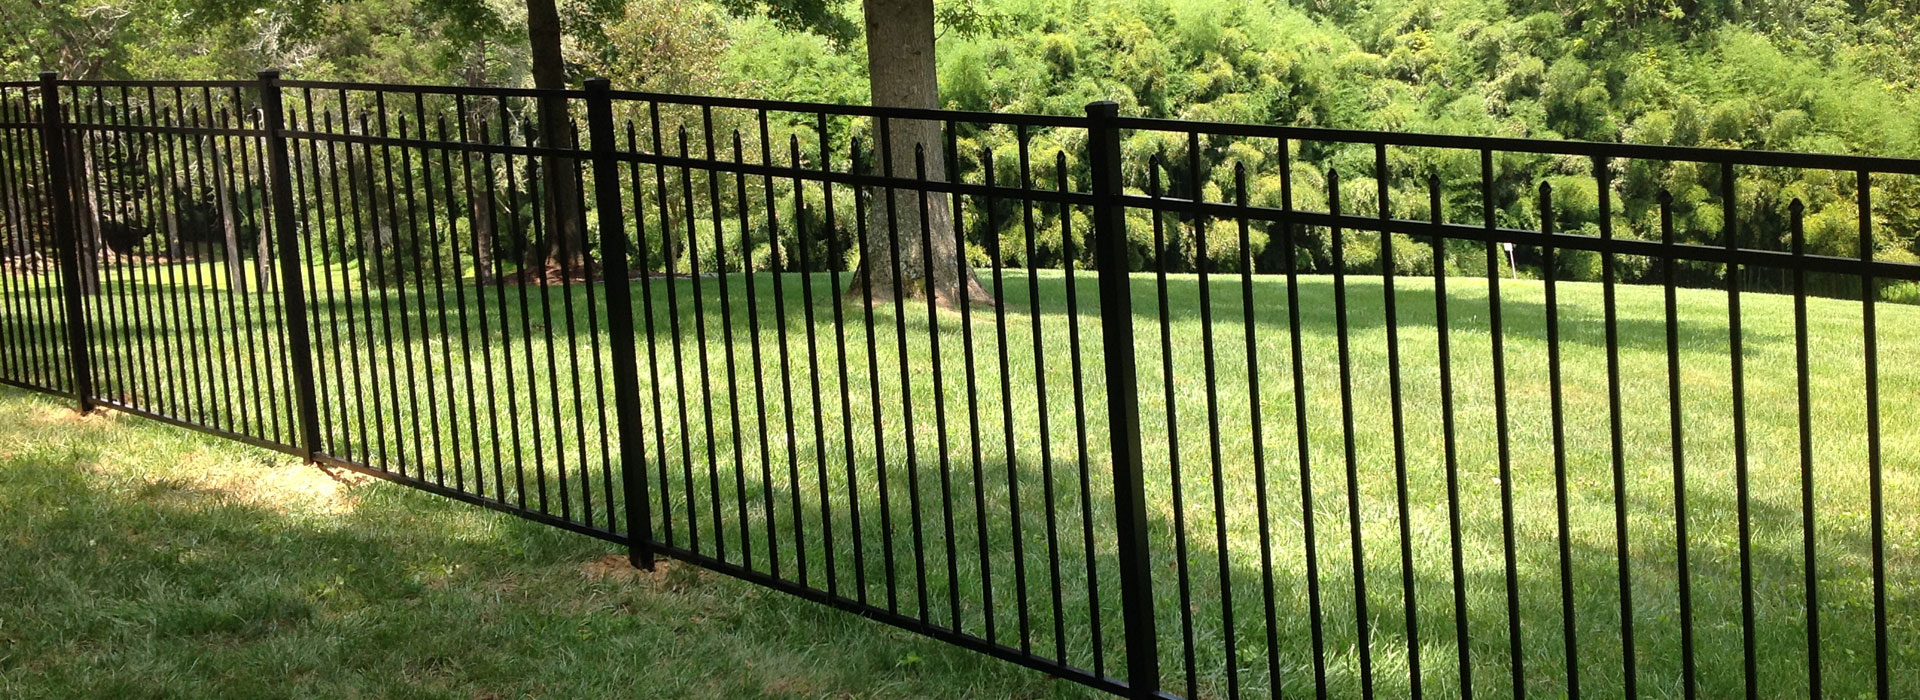 3 Benefits Of An Ornamental Fence Freedom Fence Amp Deck